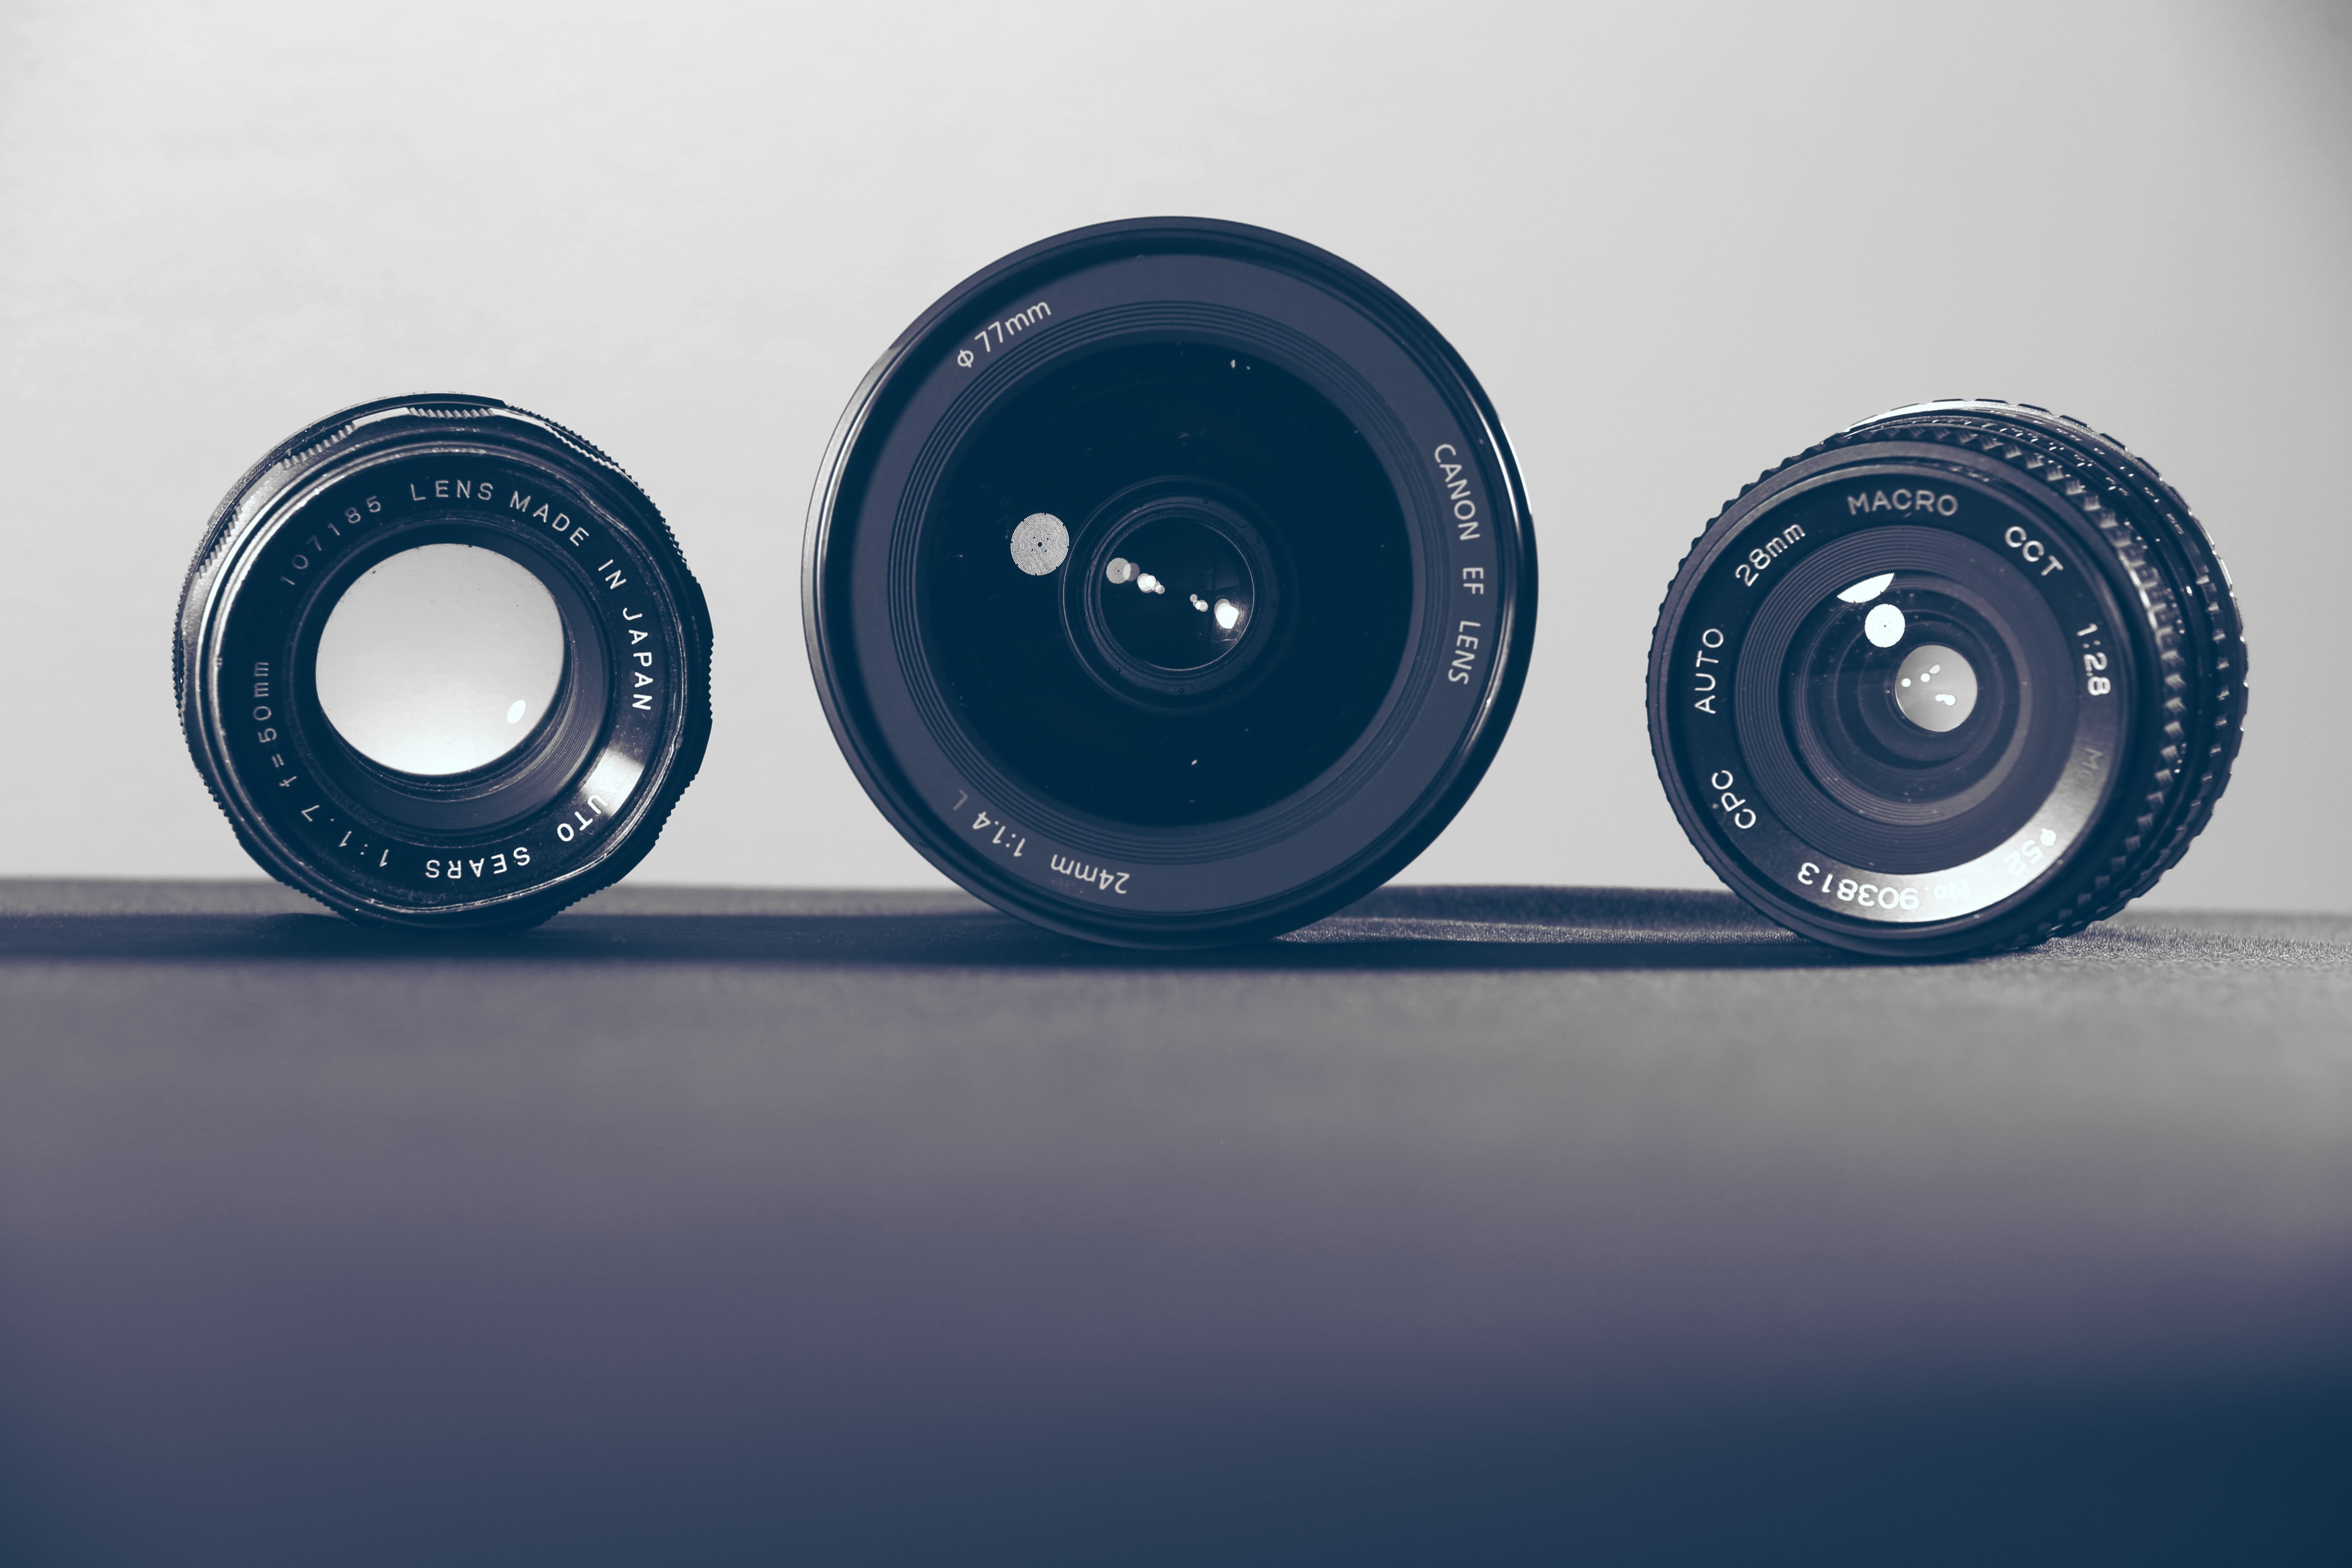 Best 35mm vs. 50mm Lens: Which Is One Better? [Comparison + Key Features]